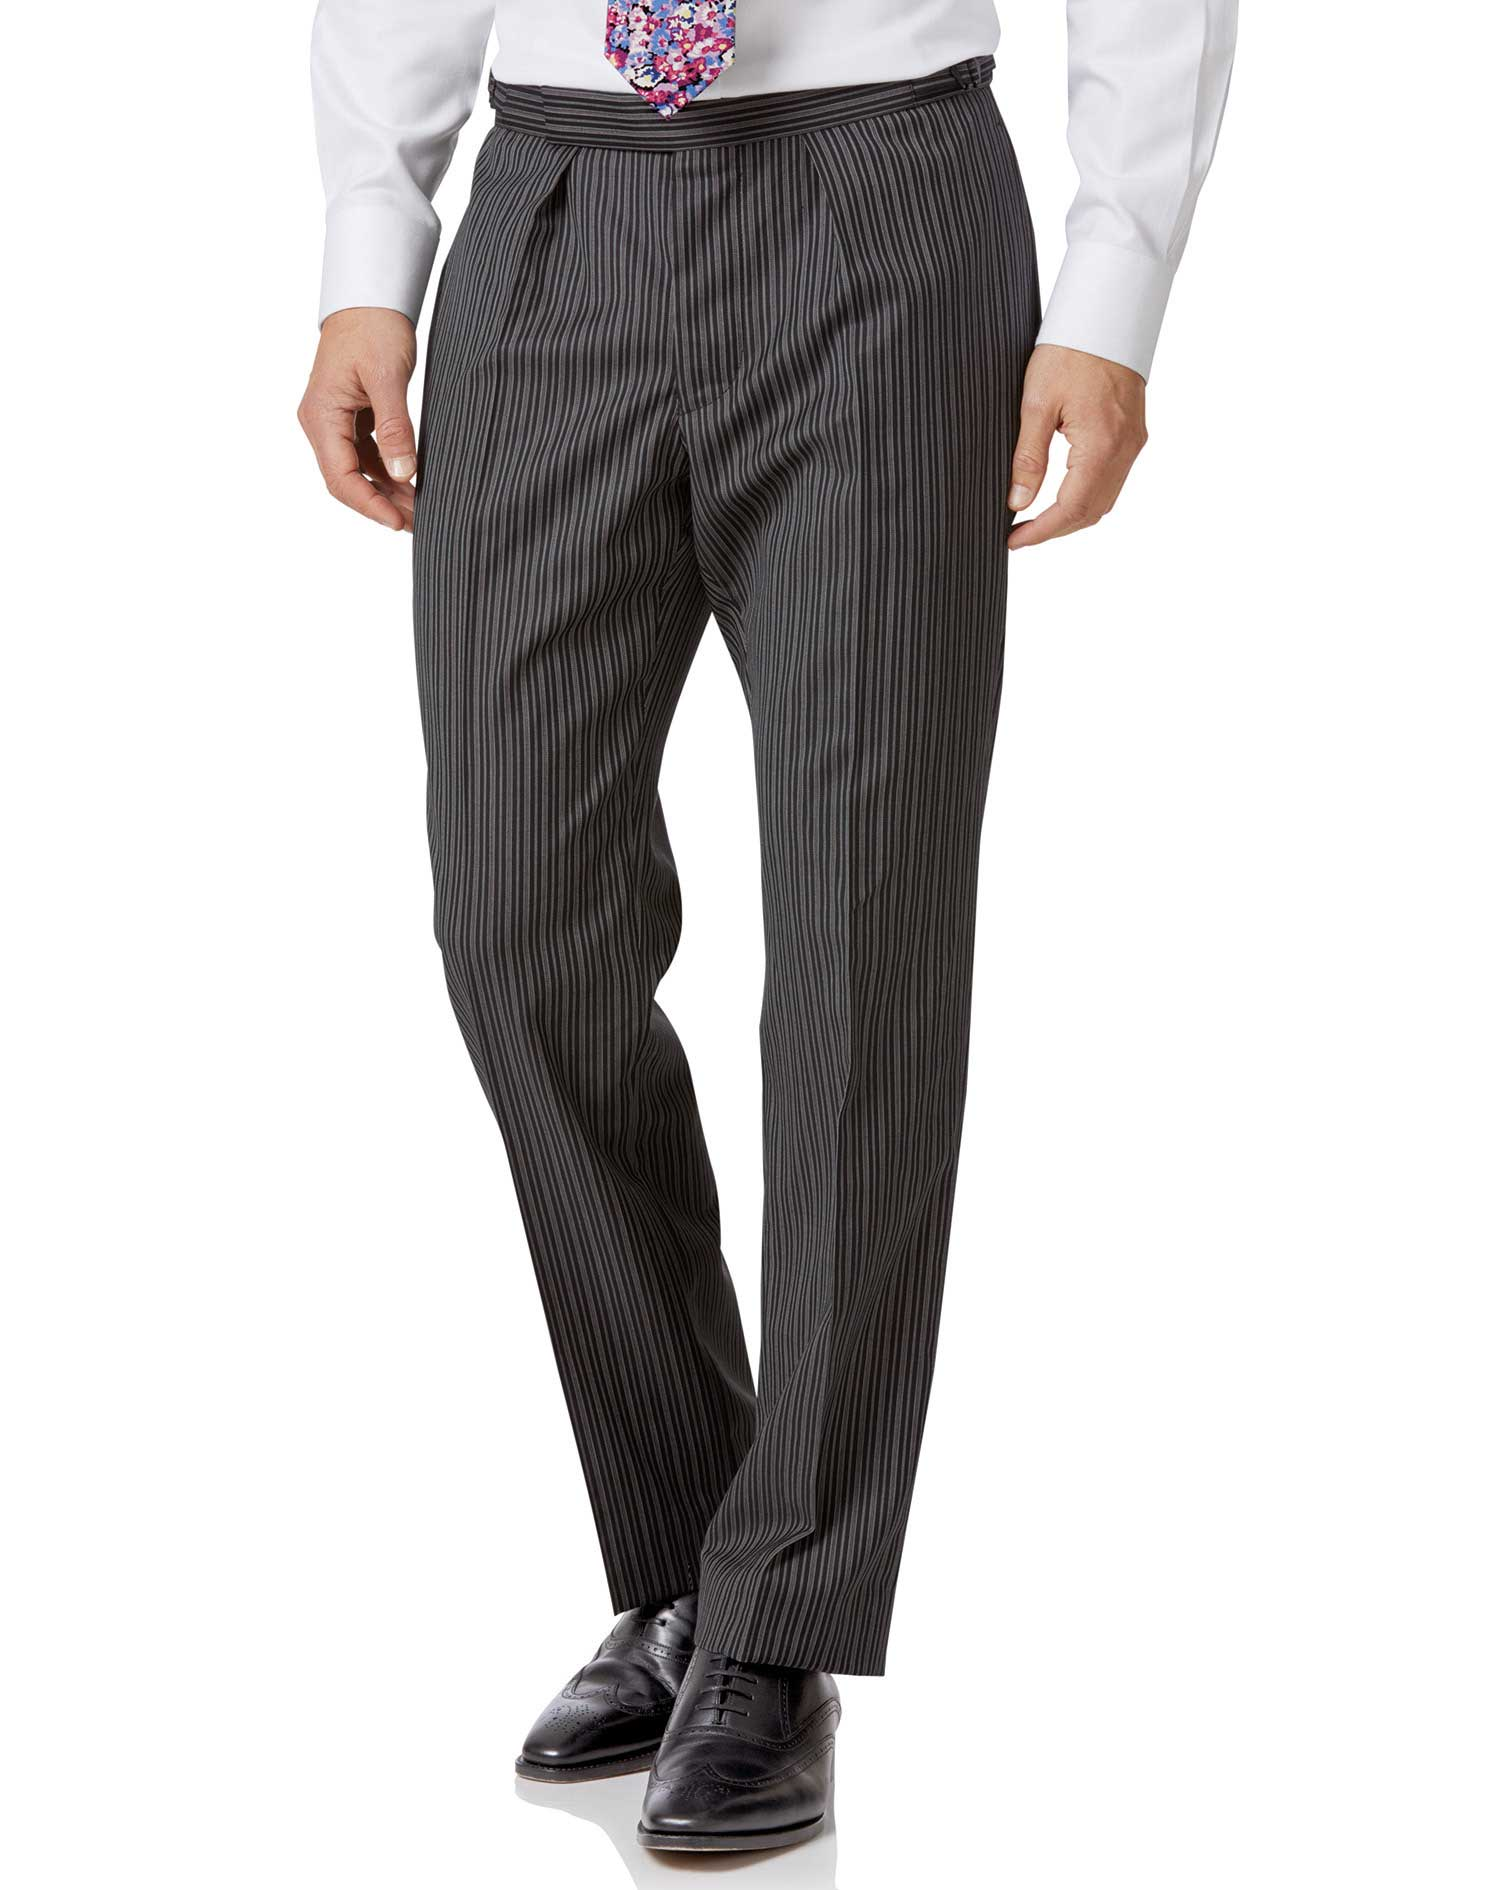 Black Stripe Classic Fit Morning Suit Trousers Size 34/30 by Charles Tyrwhitt